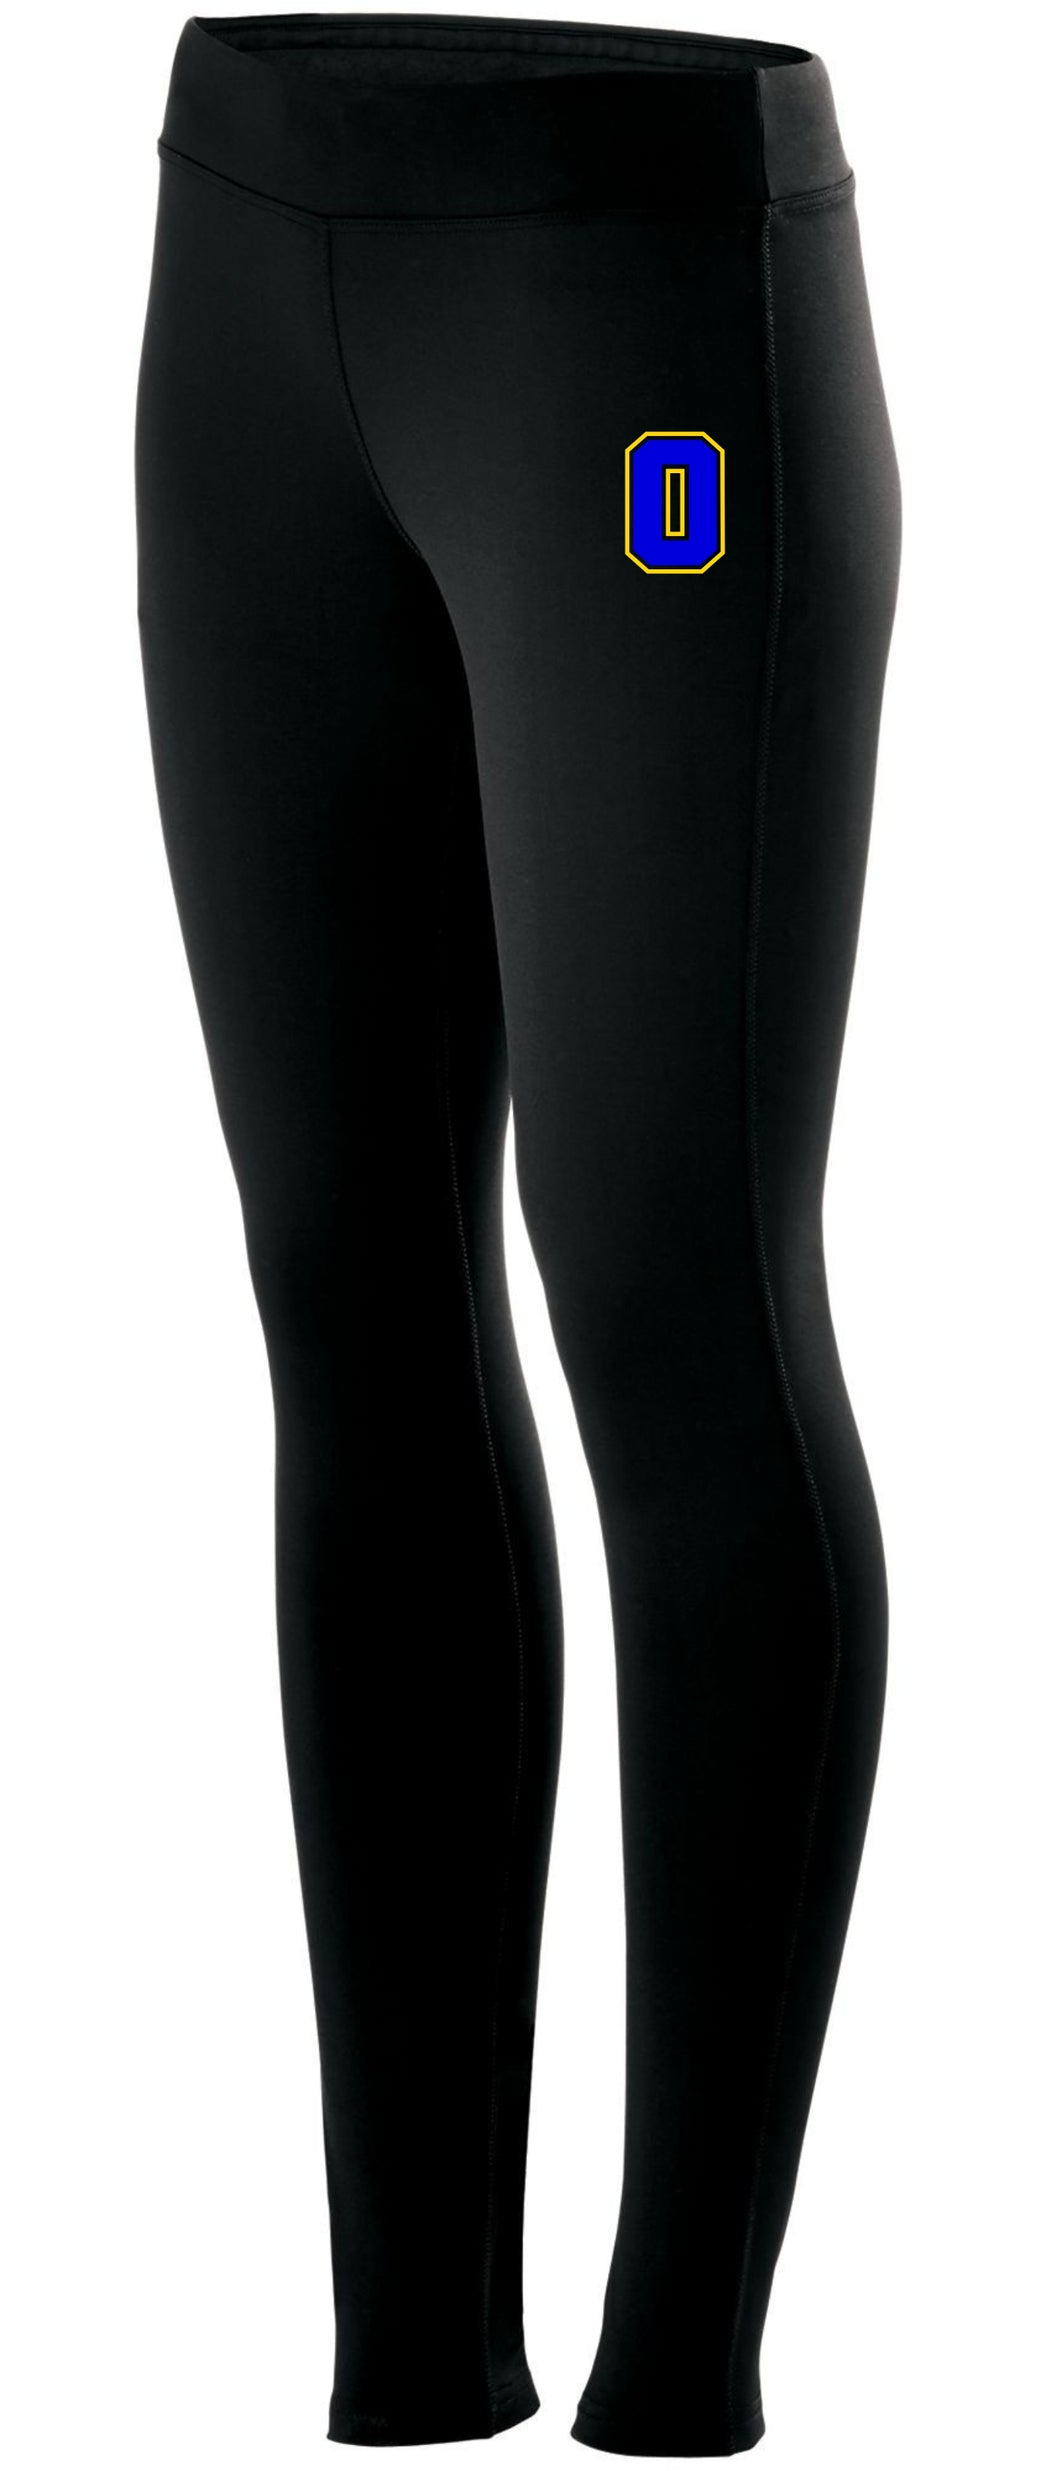 Block O Leggings Women's